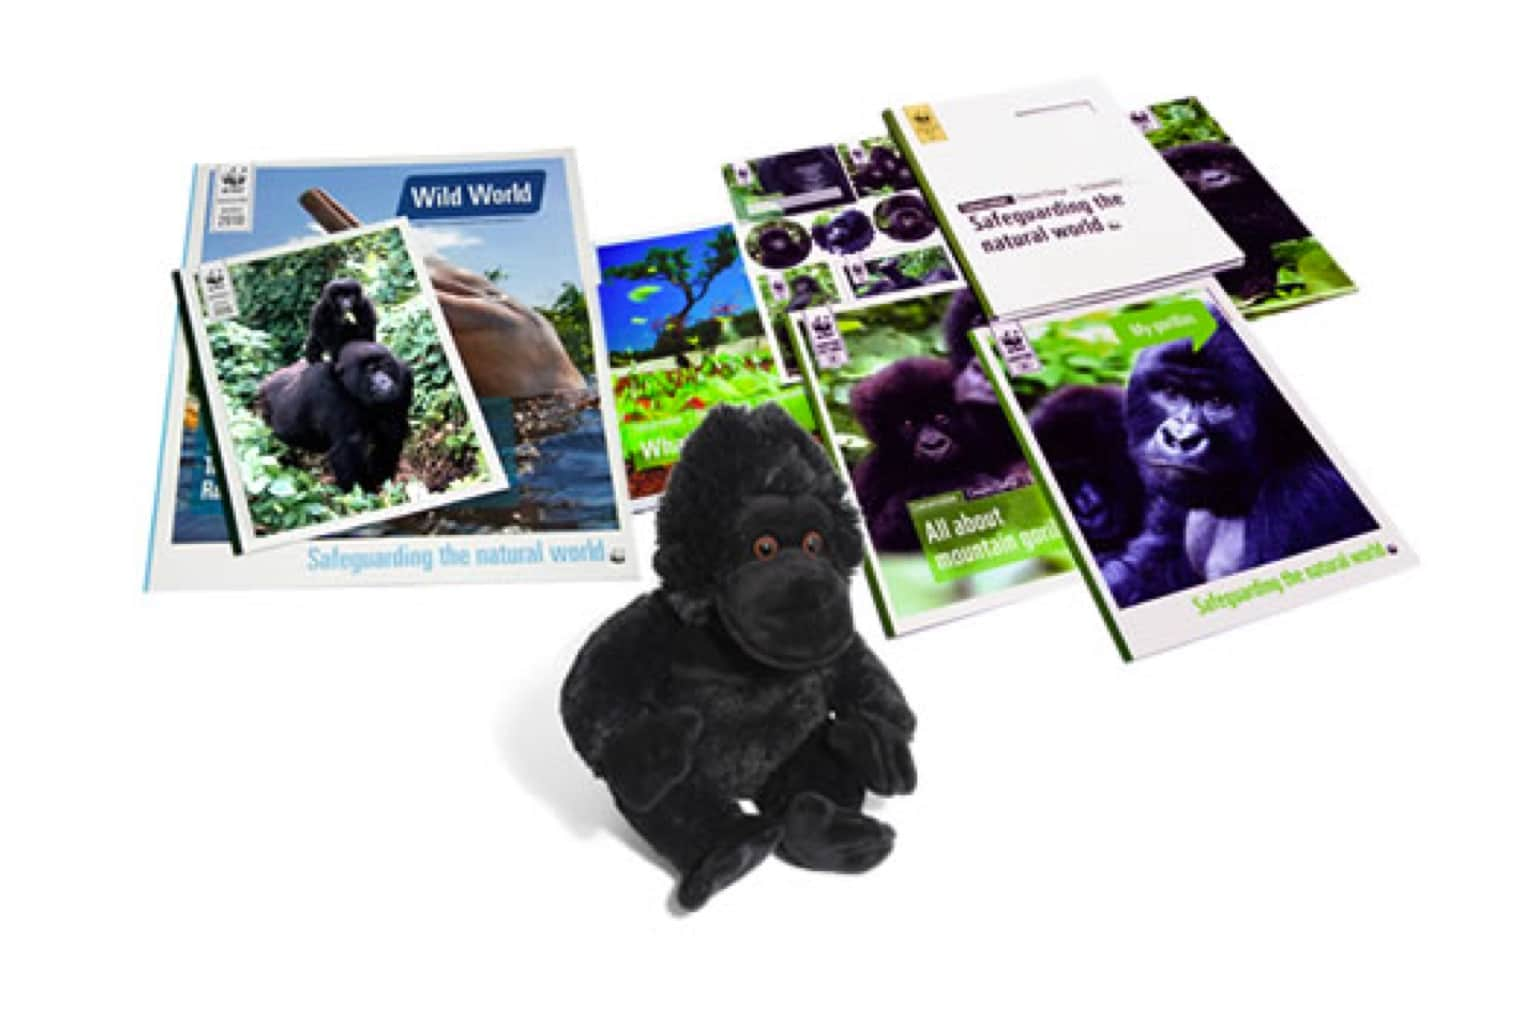 Adopt a Mountain Gorilla